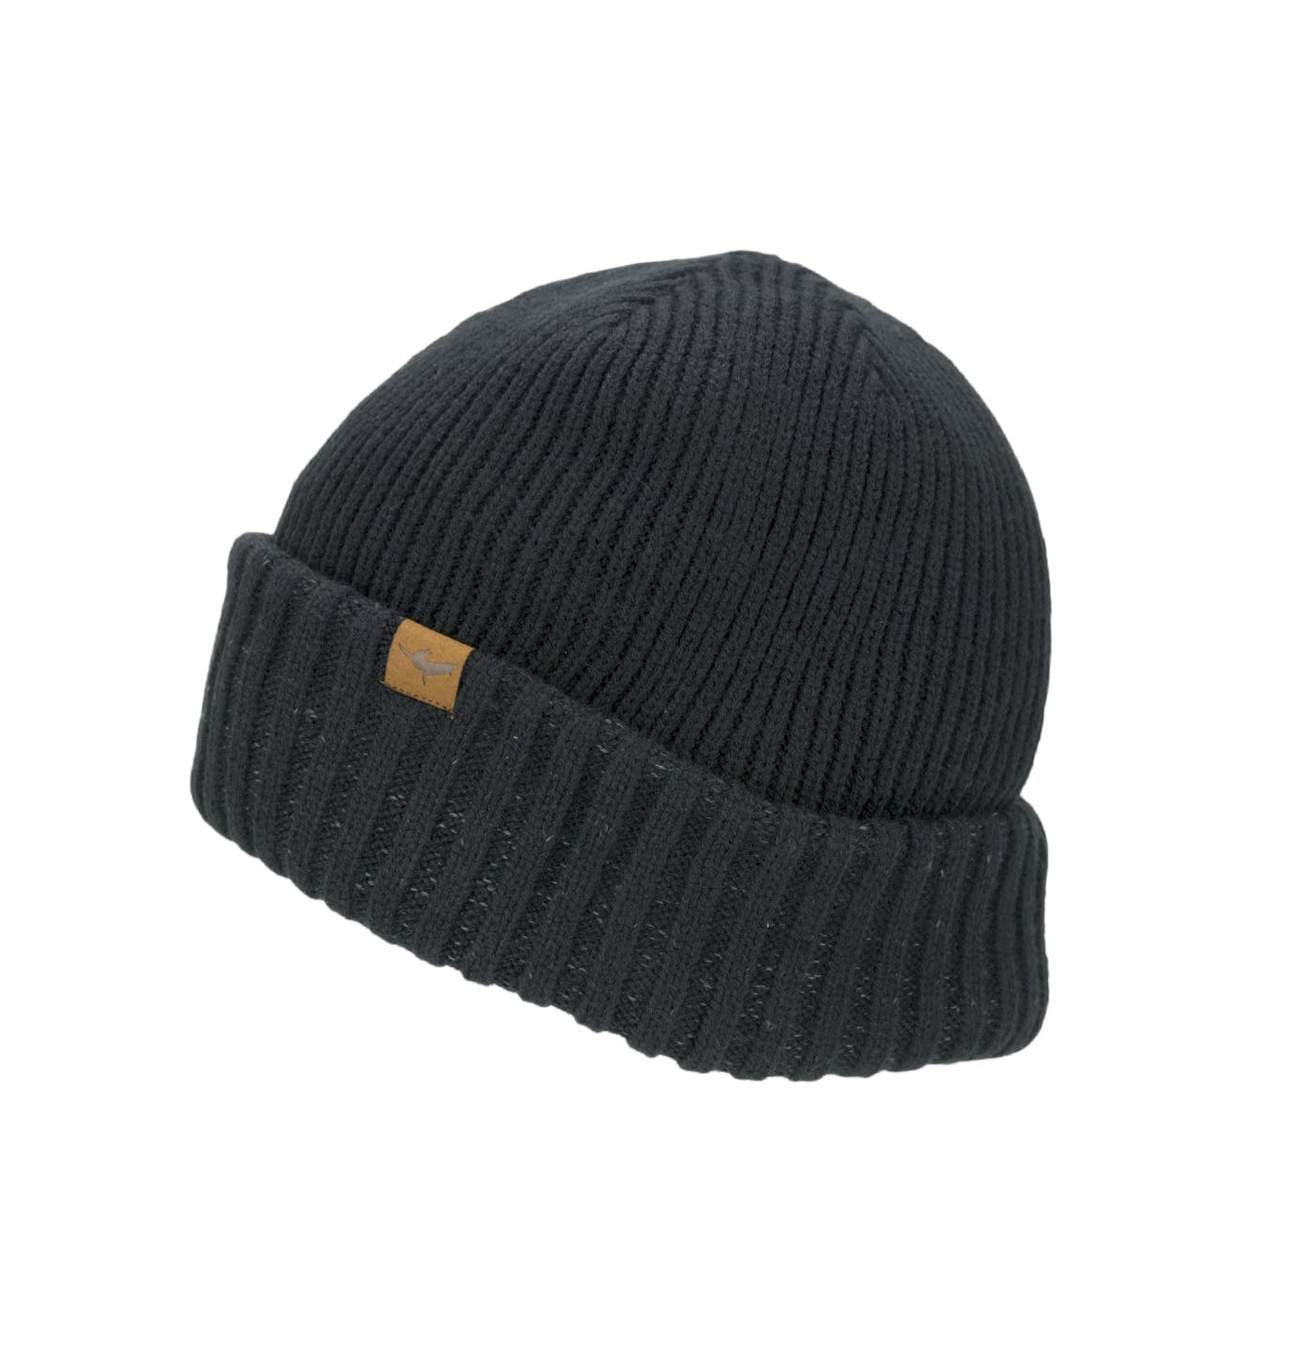 waterproof-cold-weather-roll-cuff-beanie-hat